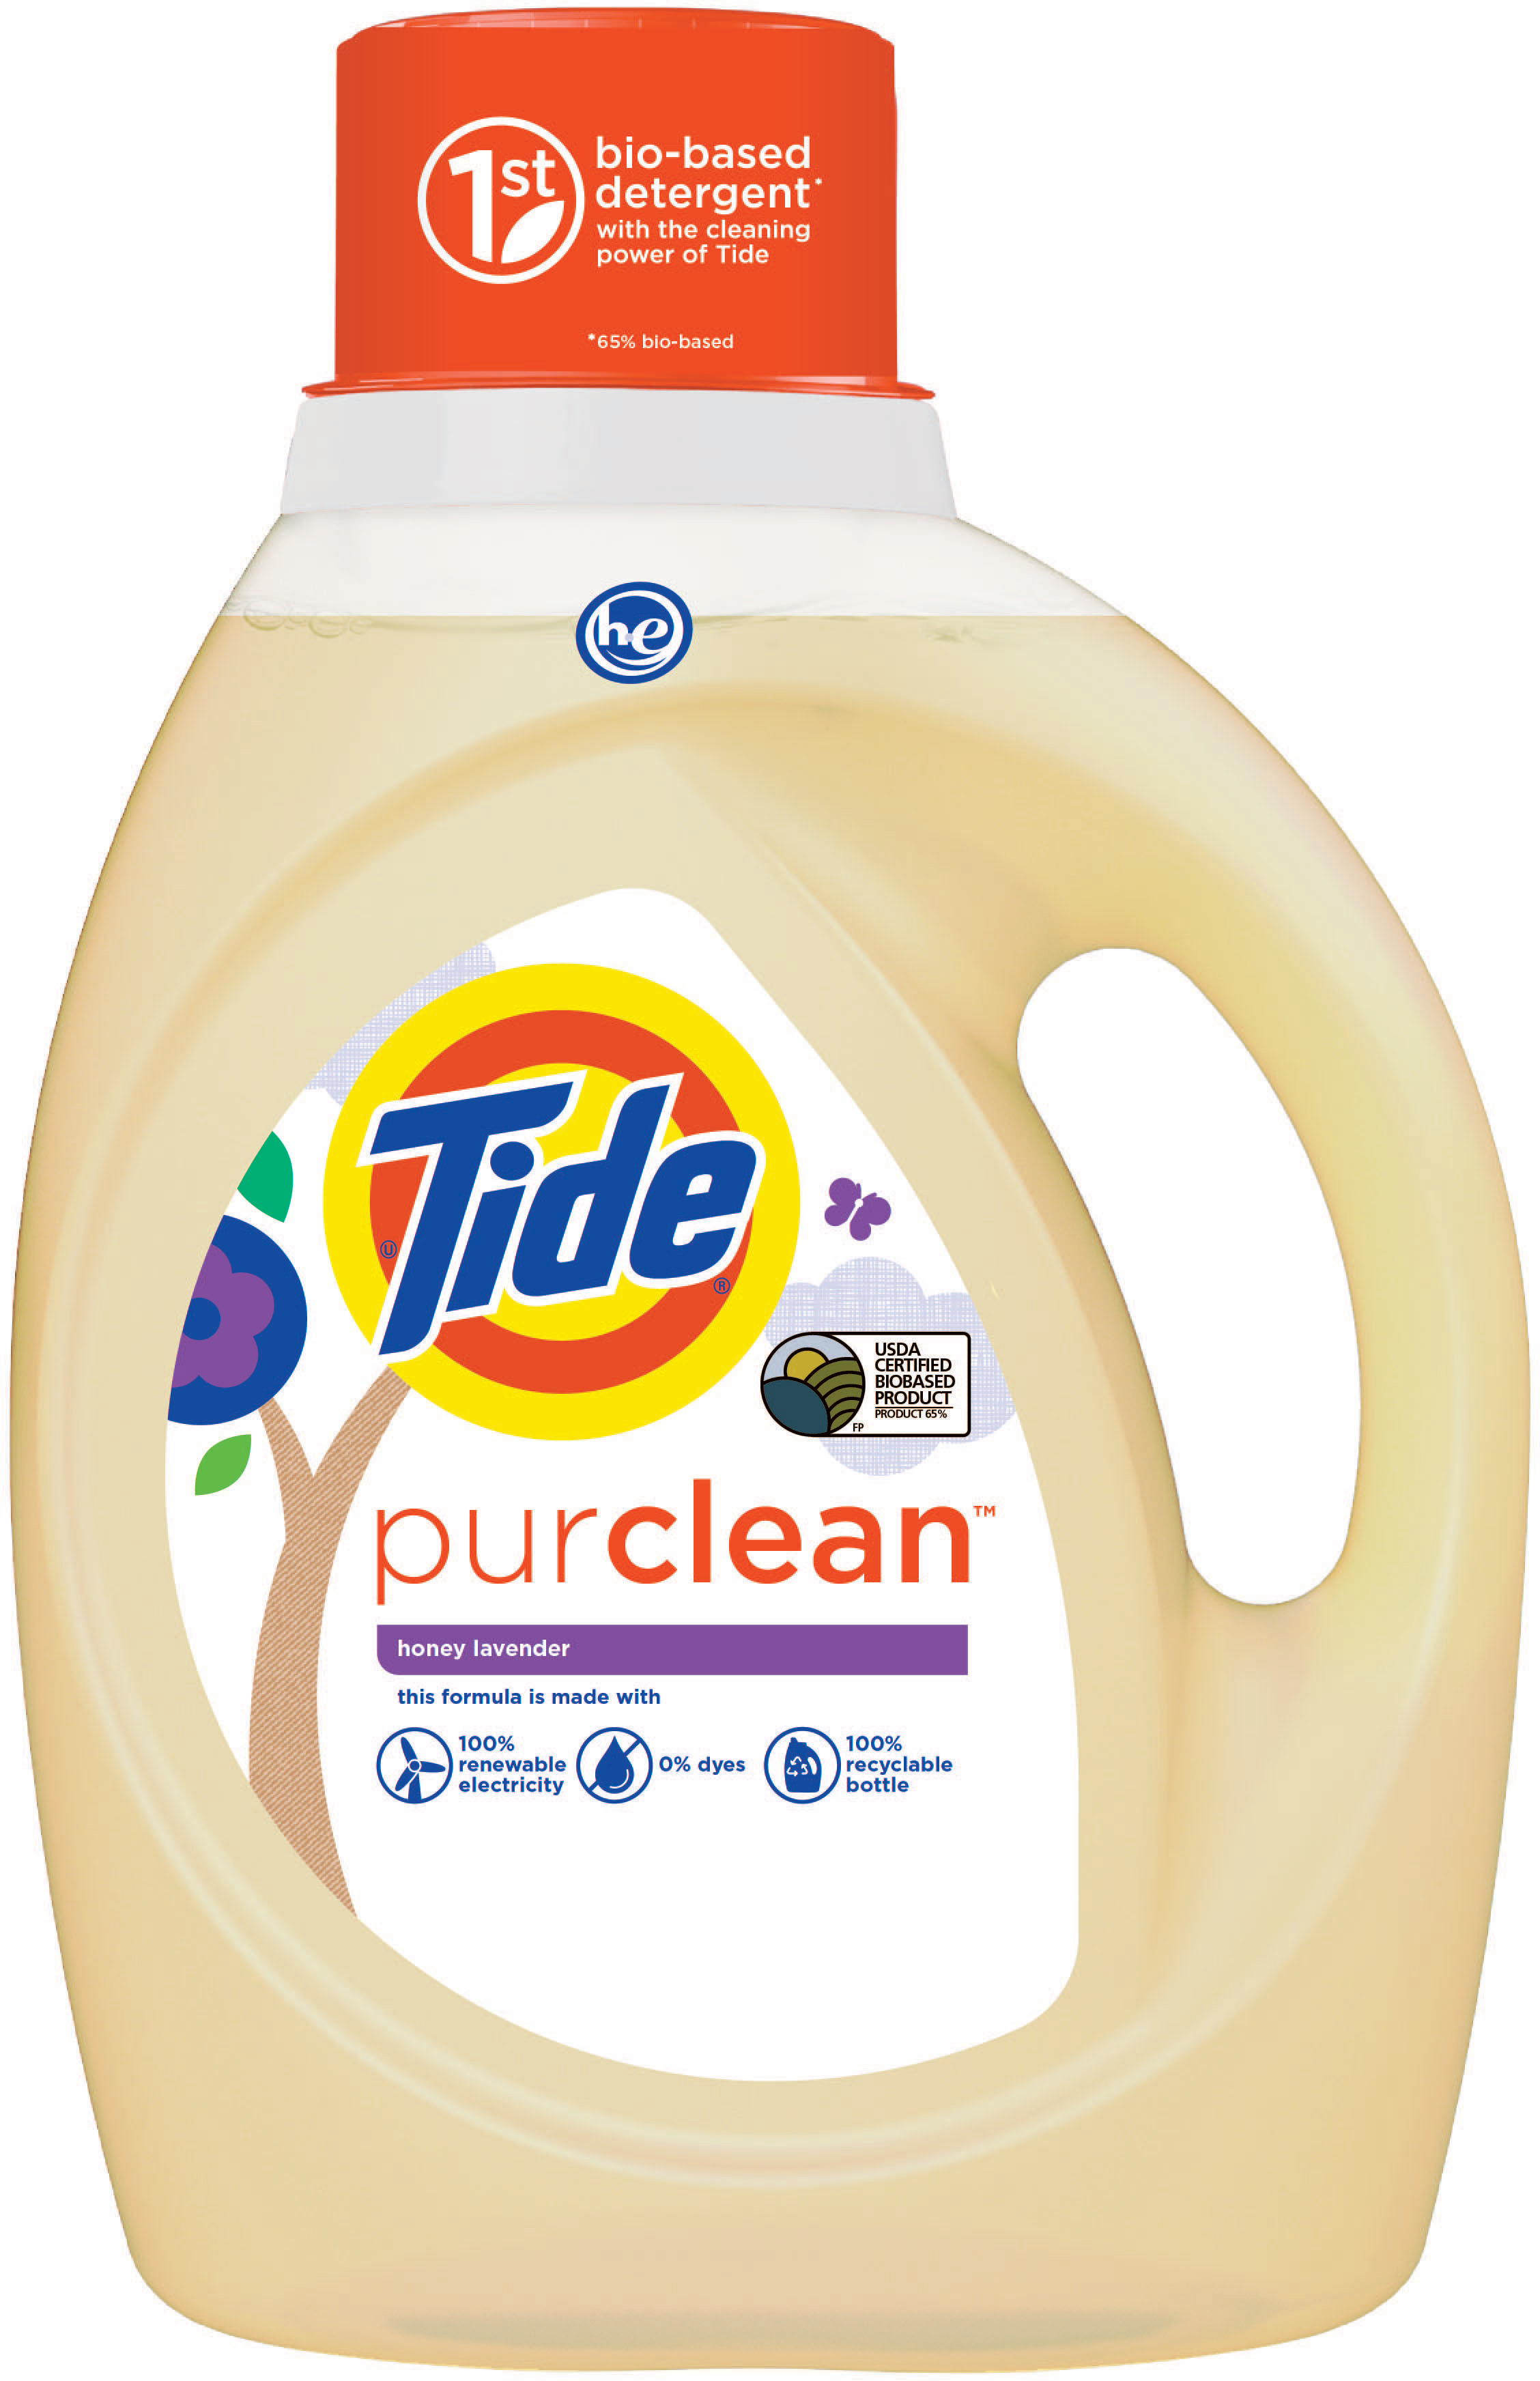 Tide Launches New Eco Friendly Detergent Purclean Business Wire